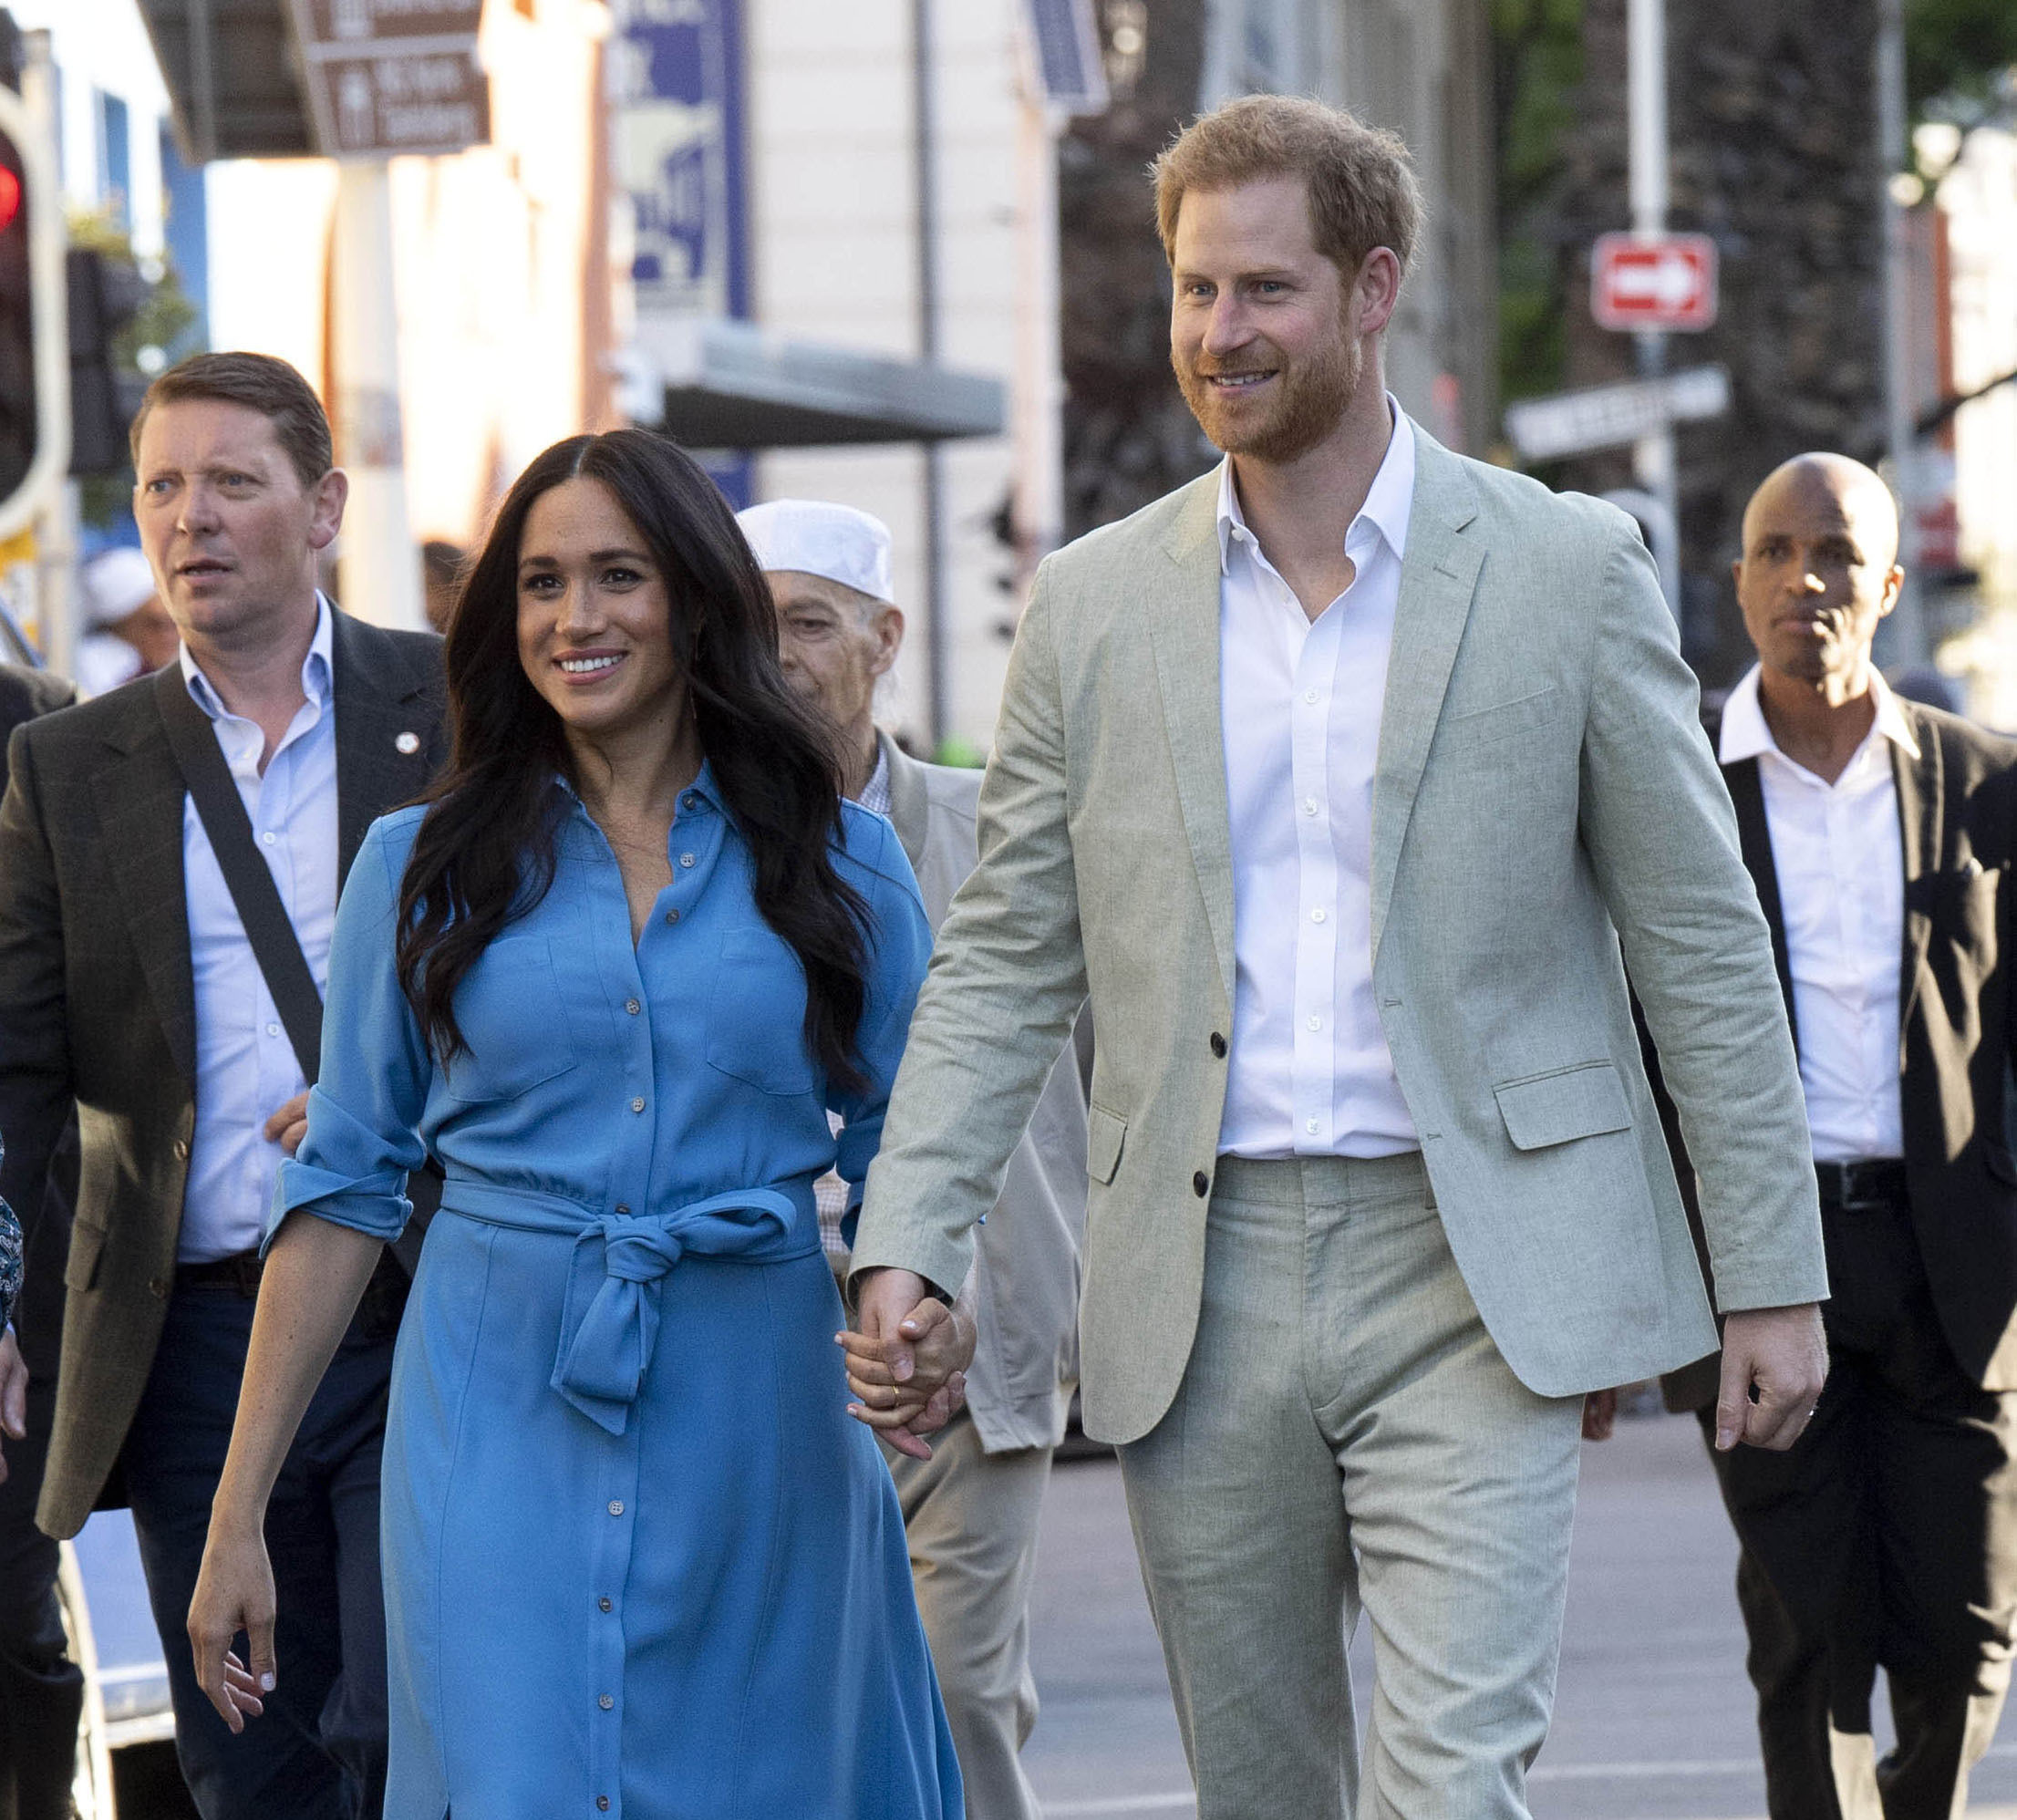 Meghan Markle, Prince Harry First Podcast Episode